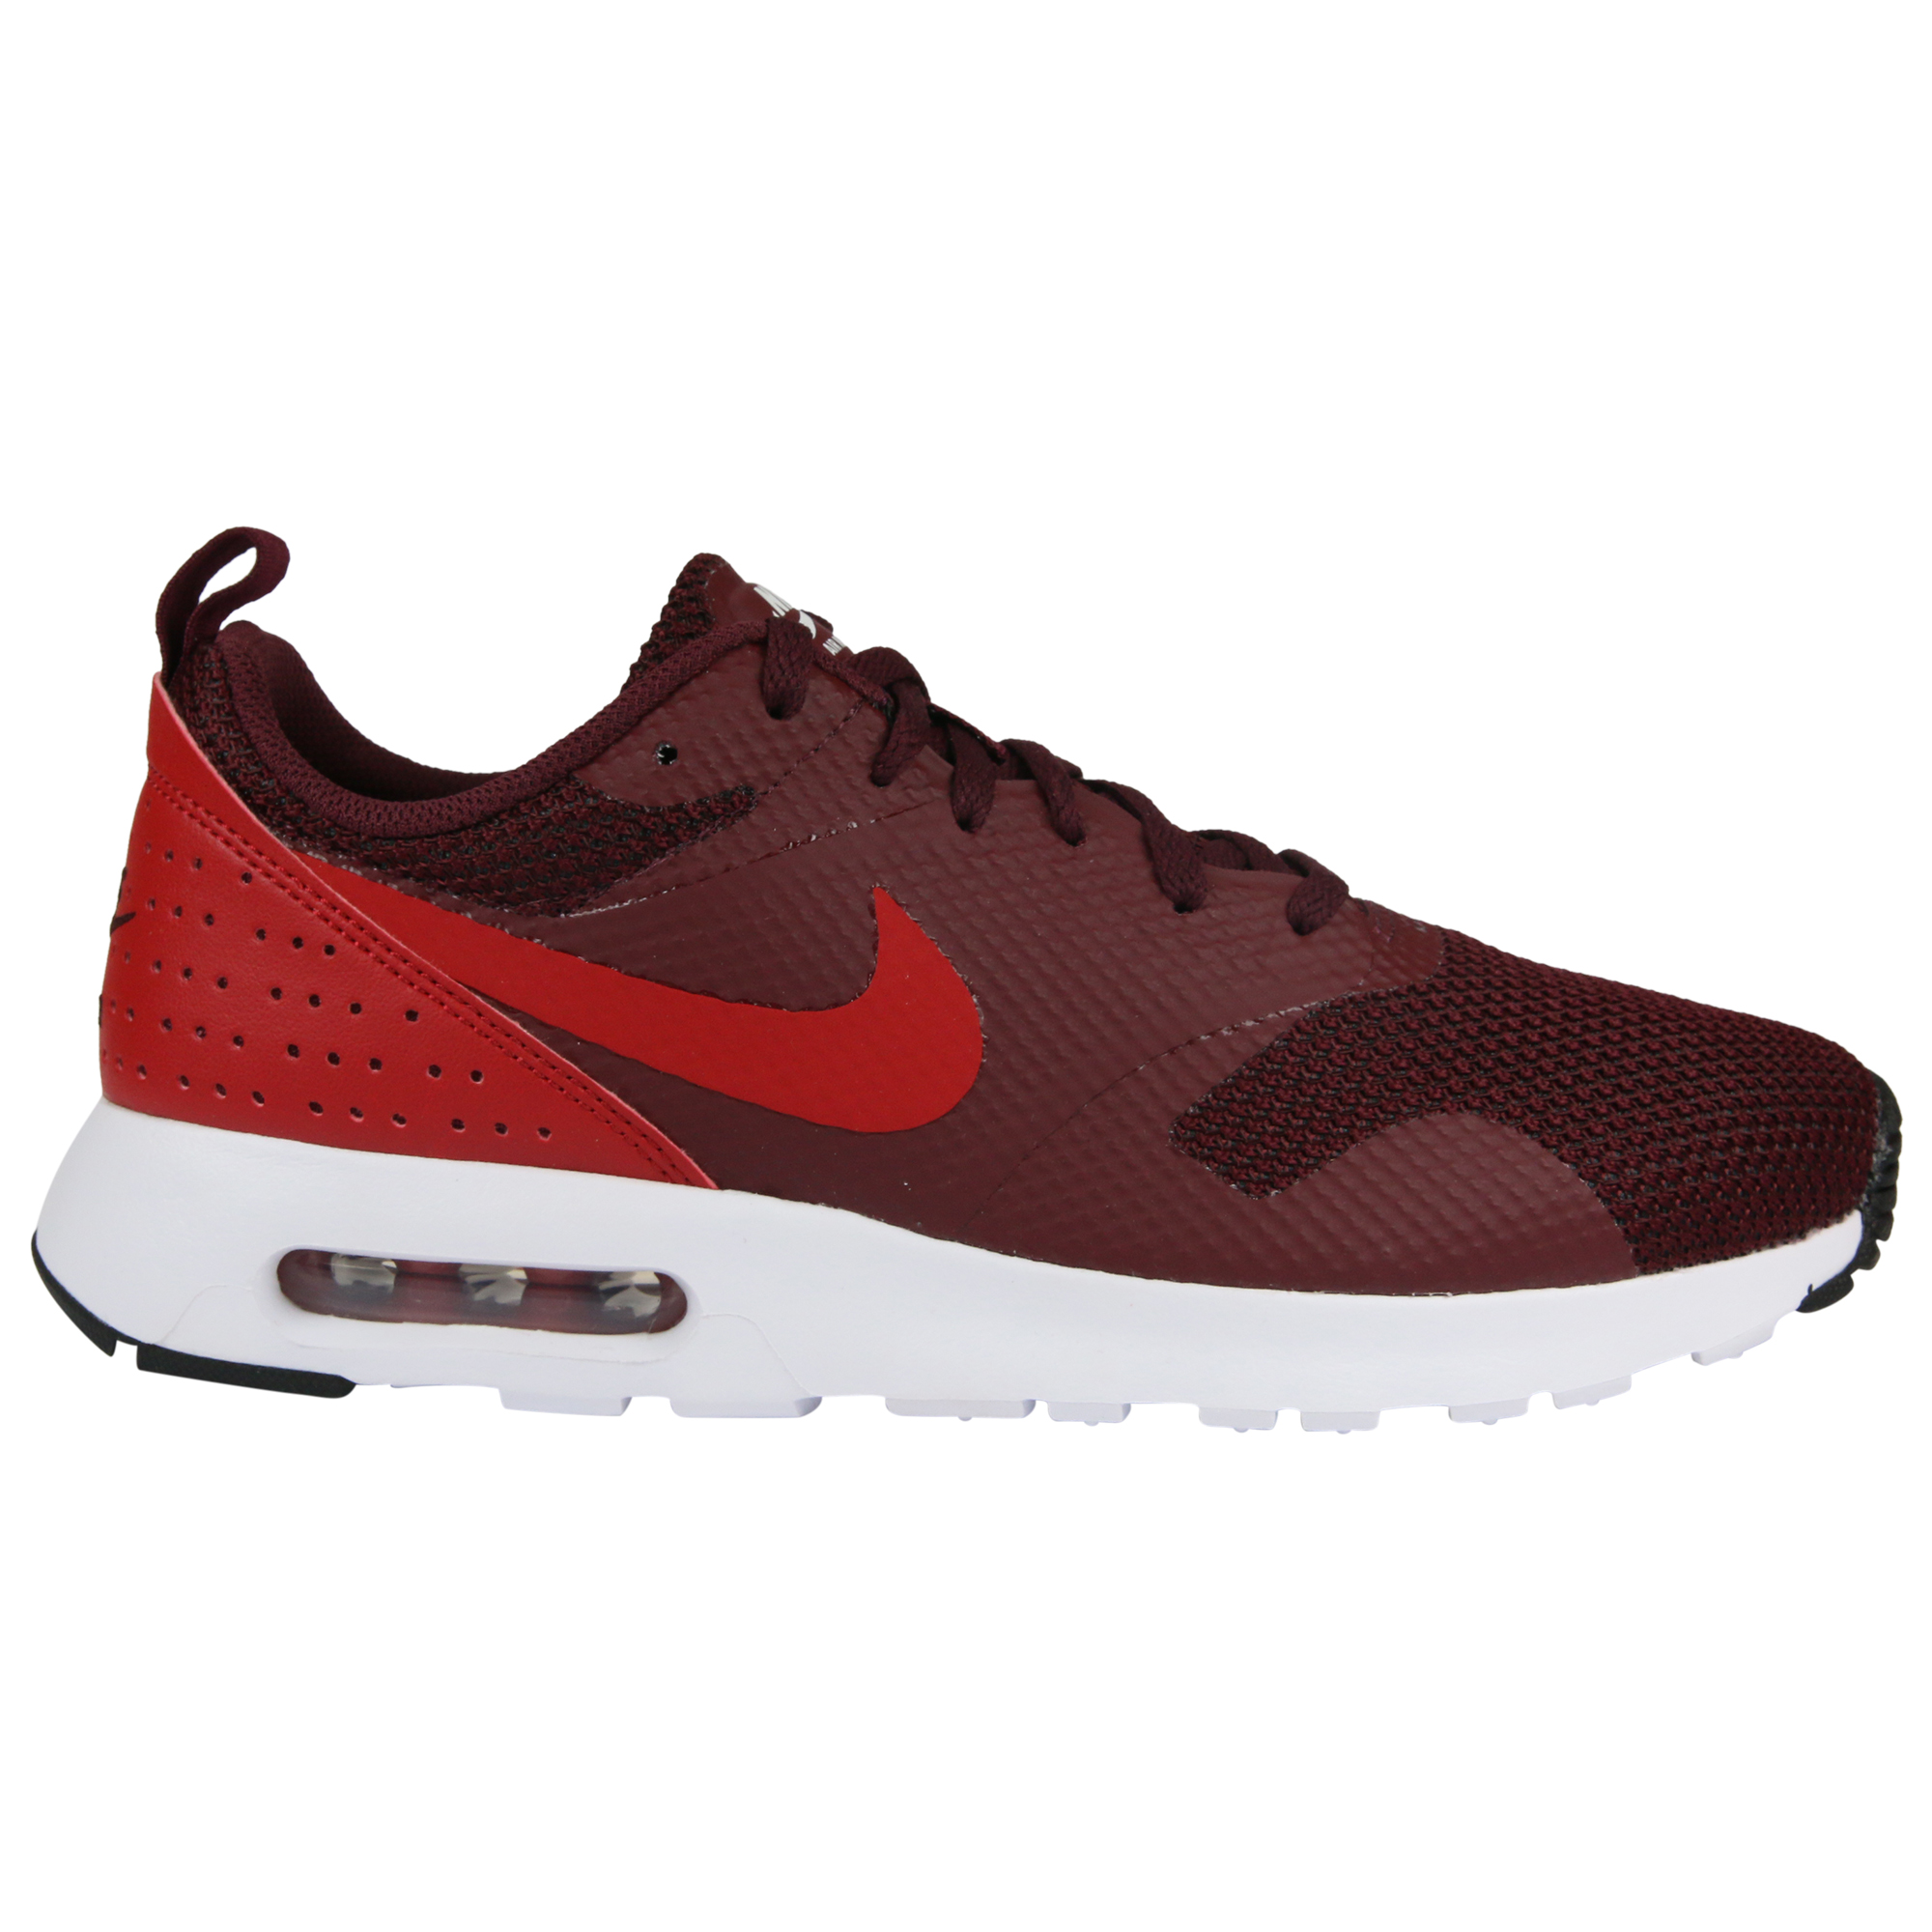 nike air max tavas schuhe turnschuhe sneaker herren. Black Bedroom Furniture Sets. Home Design Ideas